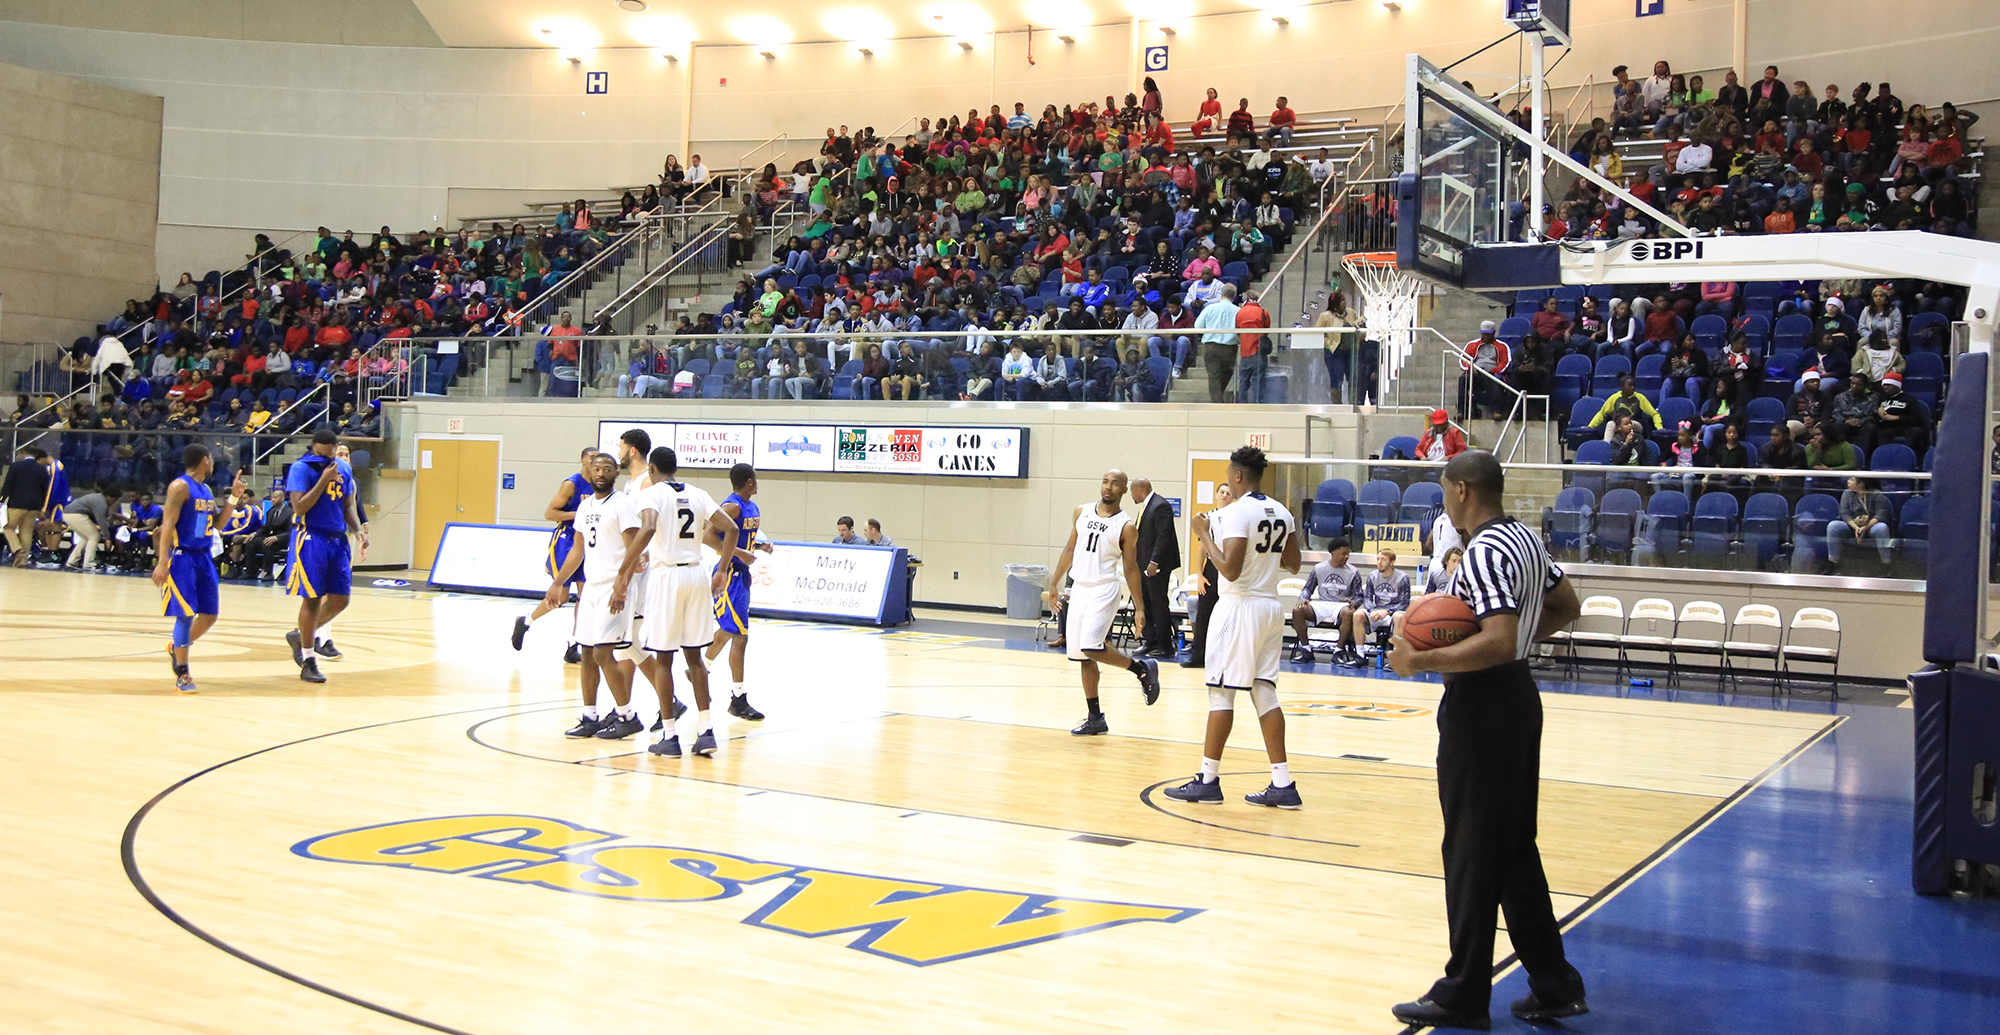 GSW Rallies For Win In Packed Storm Dome